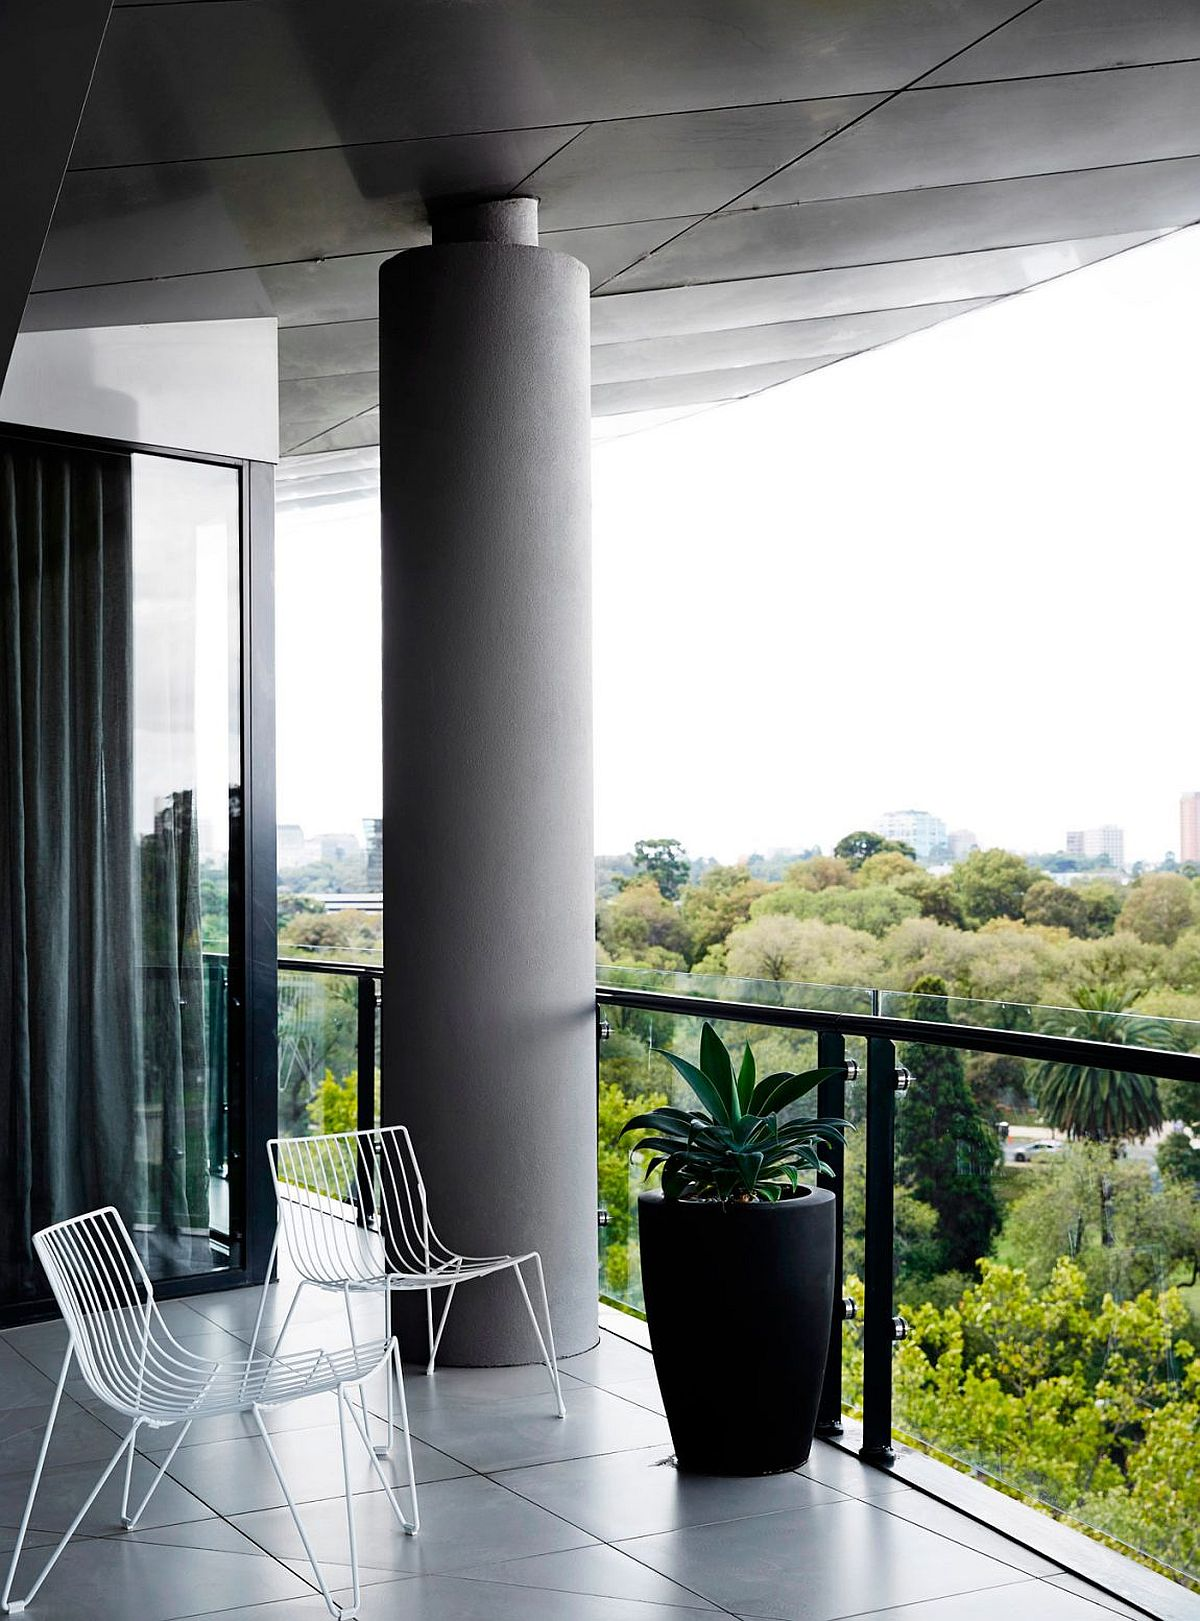 View of the city from the balcony of the revamped home in Melbourne